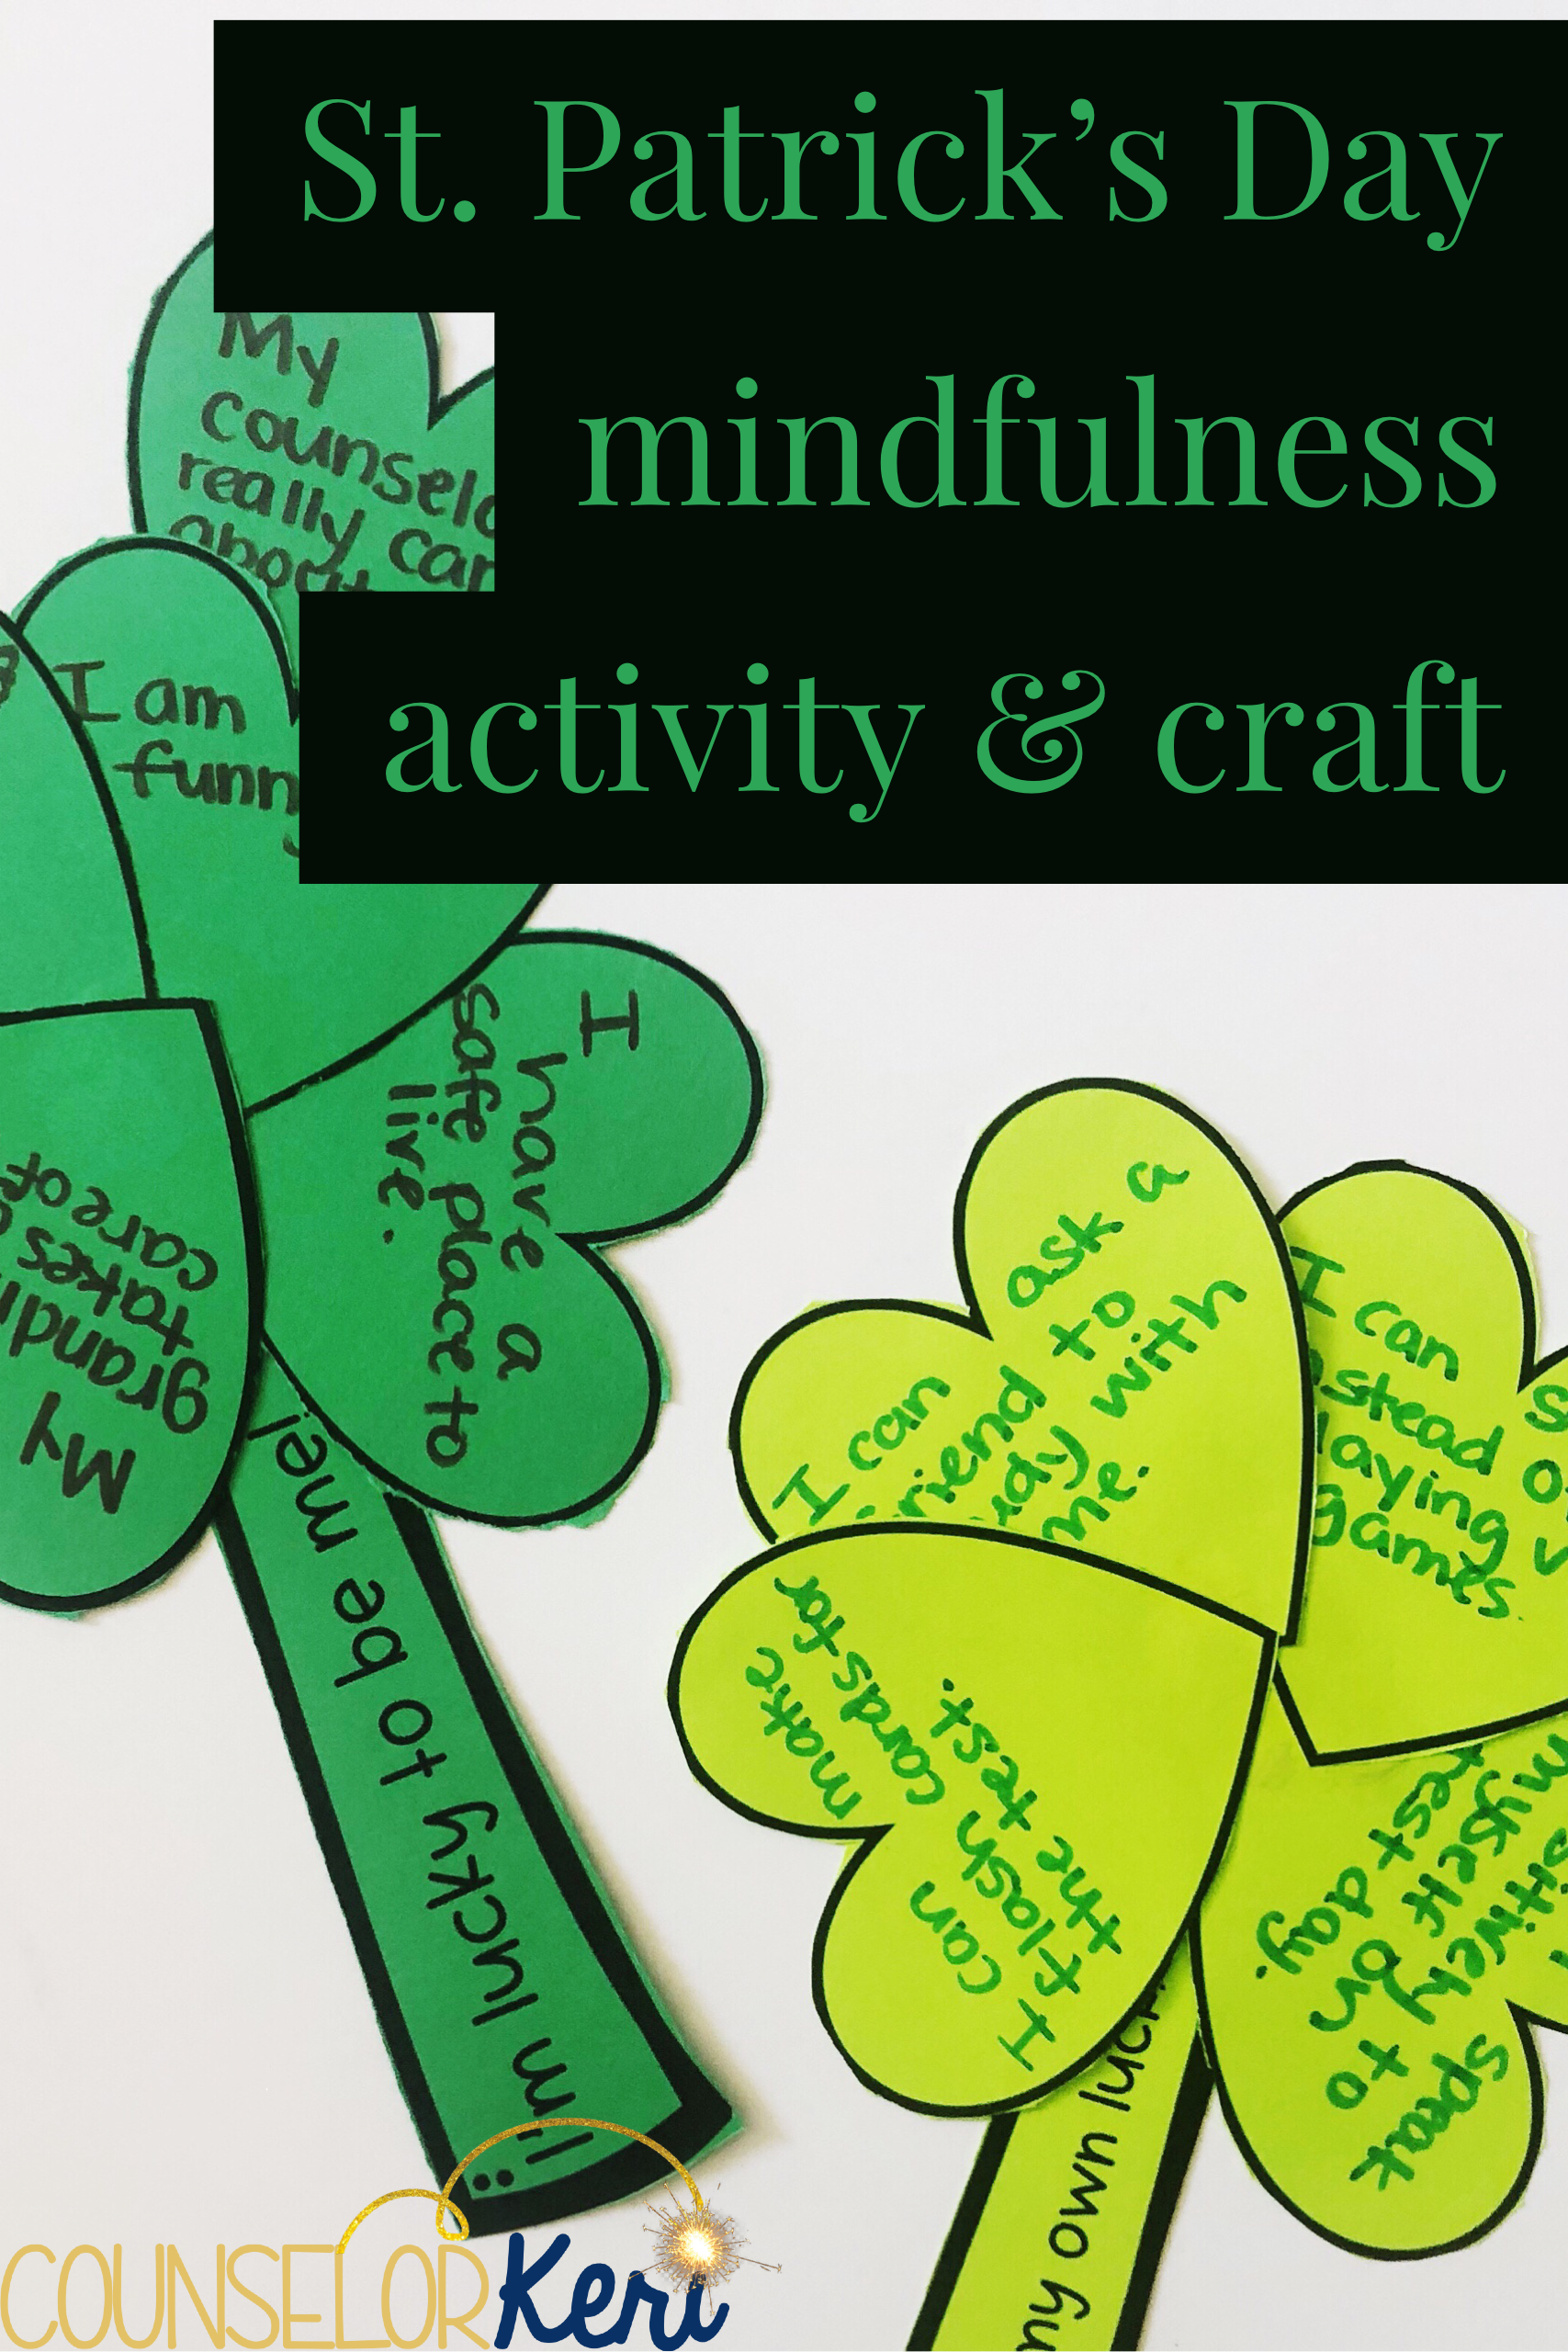 660c293ec St. Patrick's Day mindfulness activity: 2 scripts to explore luck, why were  lucky, and how to create our own luck. These activities are perfect for ...